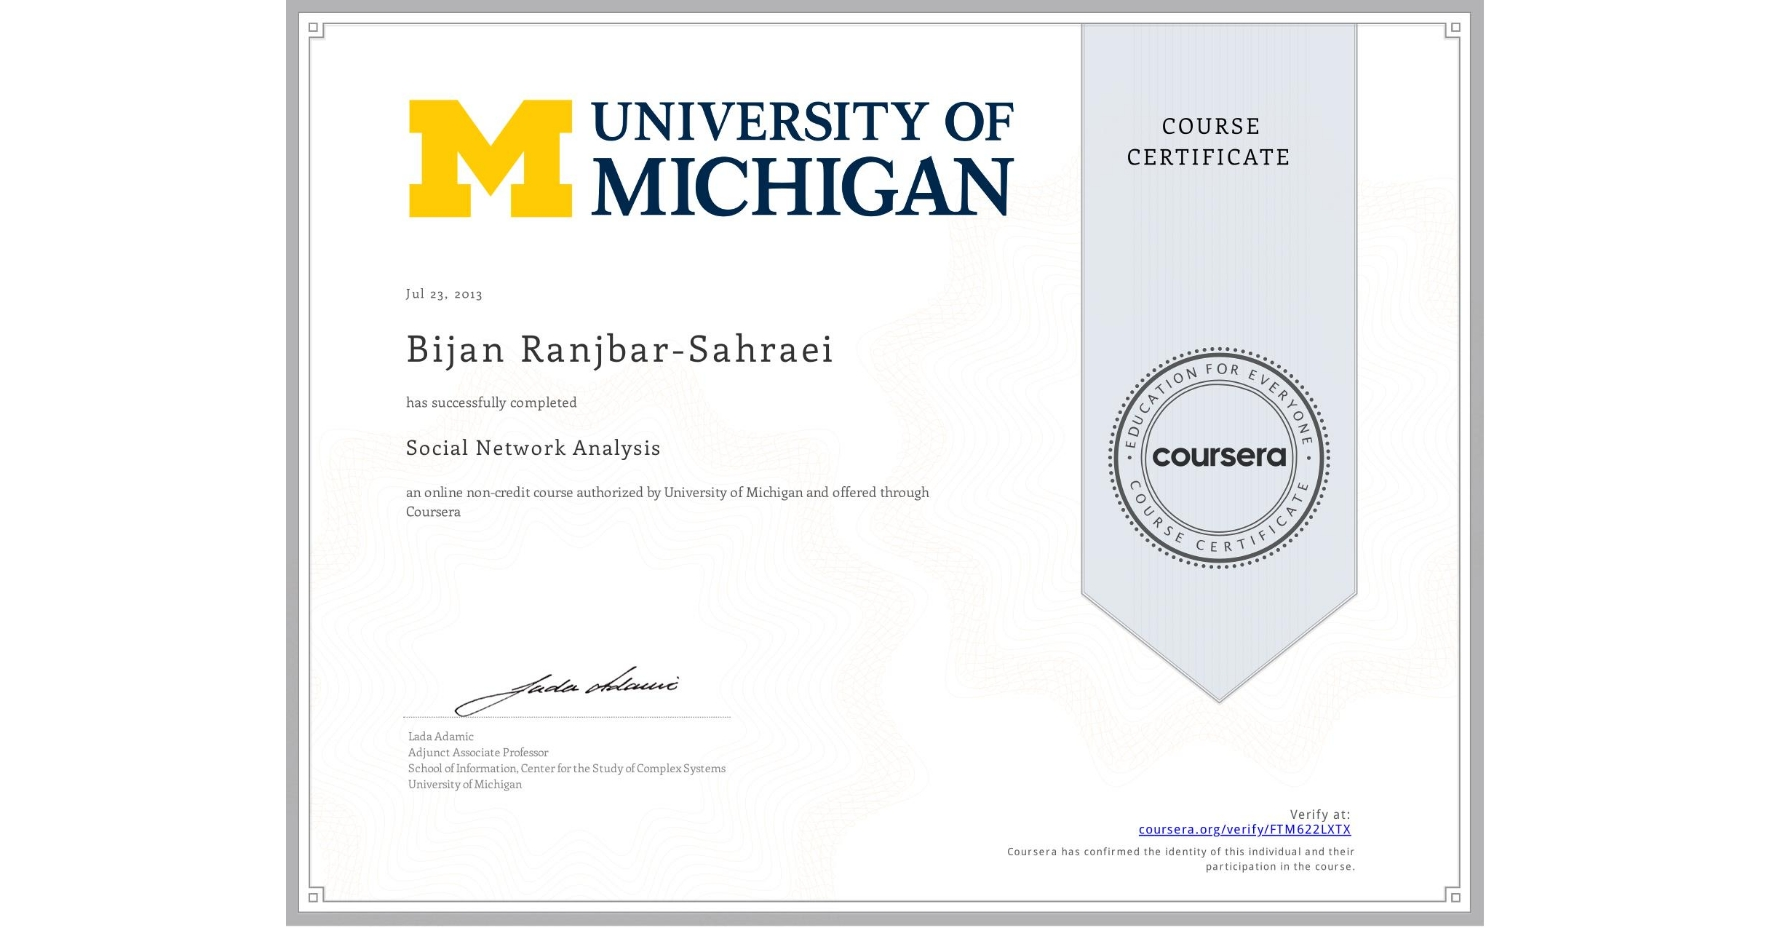 View certificate for Bijan Ranjbar-Sahraei, Social Network Analysis, an online non-credit course authorized by University of Michigan and offered through Coursera